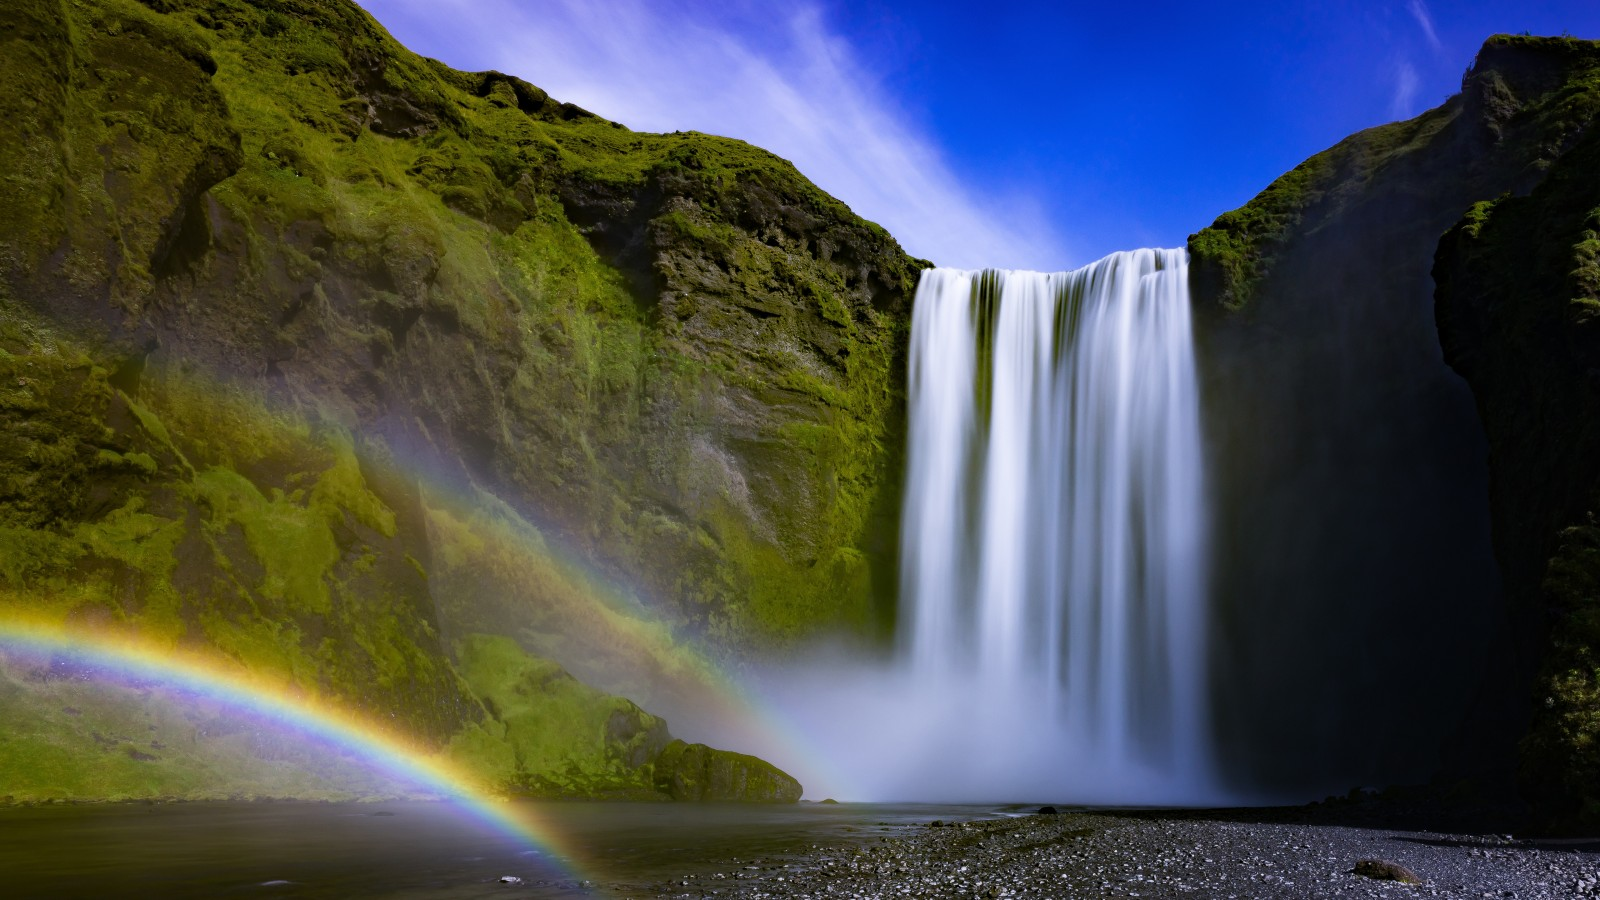 3d Iphone 7 Plus Wallpaper Skogafoss Waterfall Iceland 4k Wallpapers Hd Wallpapers